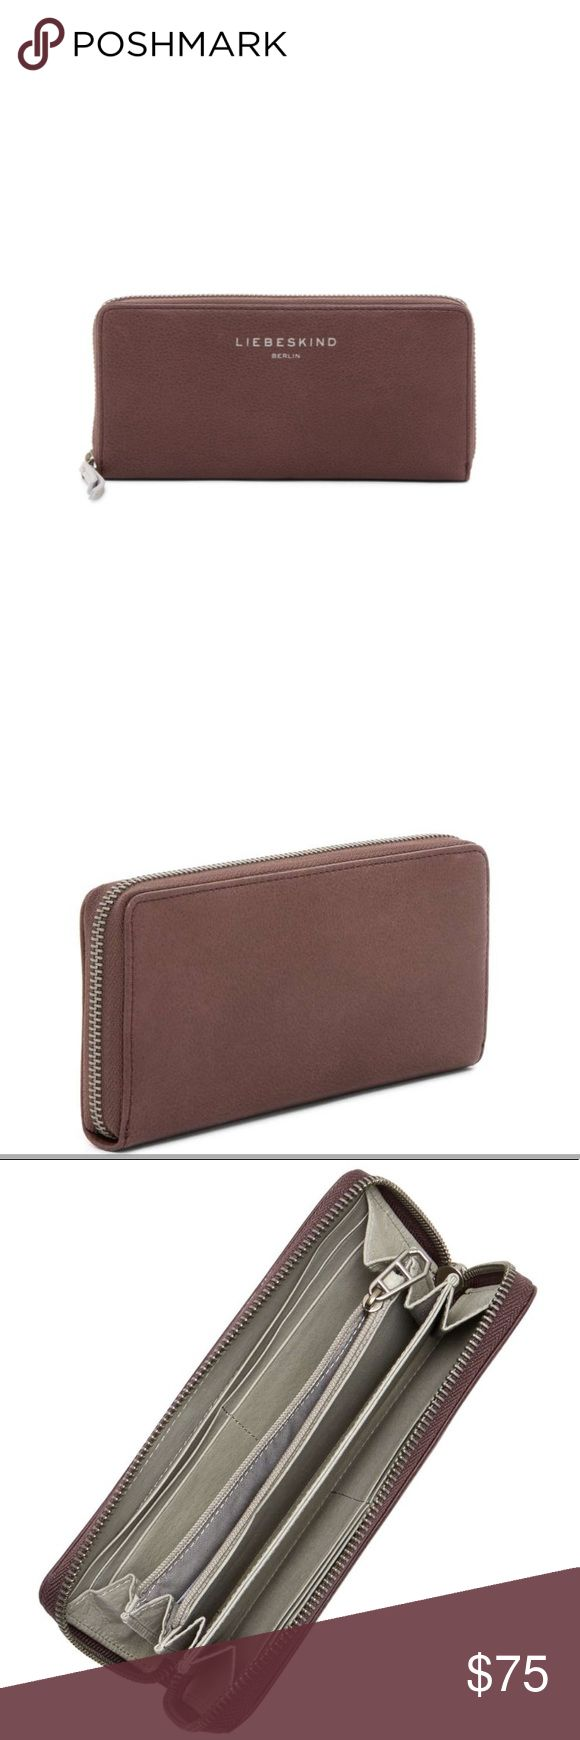 Liebeskind Sally Zip Around Leather Wallet Zip-around closure. Interior features 8 card slots, 2 currency pockets, 1 center zip pocket, and 3 open compartments. Approx. Leather exterior and lining.. Color: Plum Liebeskind Bags Wallets